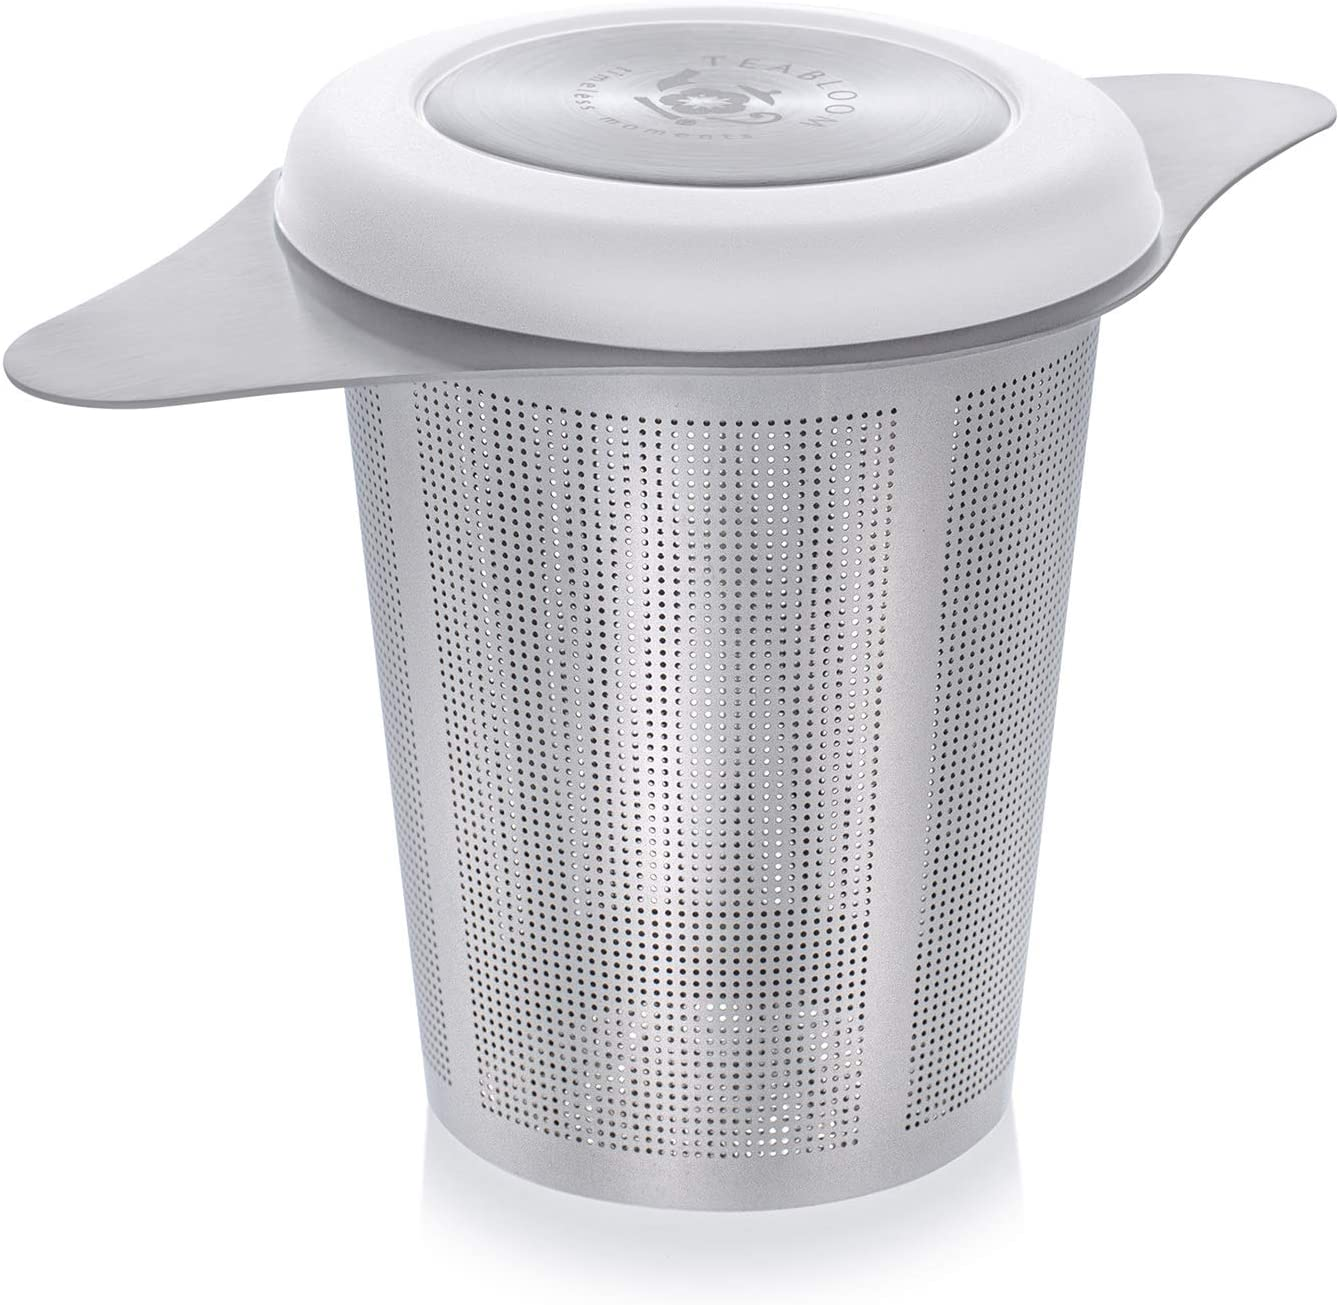 Teabloom Universal Tea Infuser with Coaster Lid – Fits Standard Teapots, Cups, Mugs – Food Grade 18/8 Stainless Steel – Large Capacity with Extra-Fine Mesh